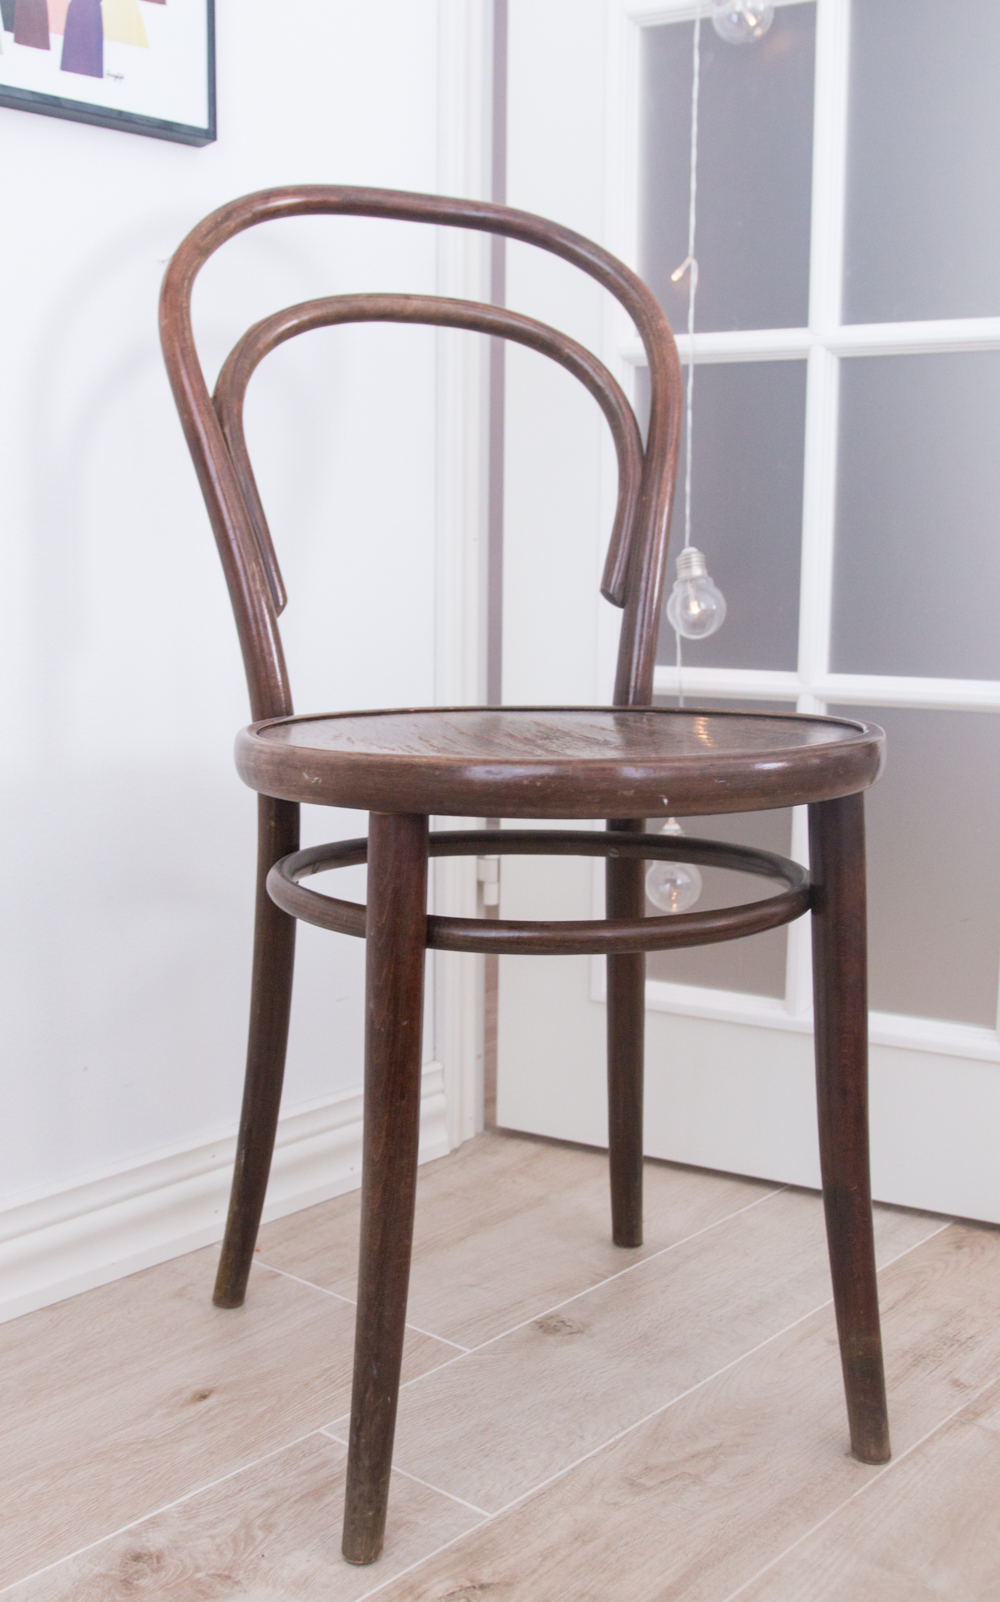 chairs-no-home-without-you-1-of-1